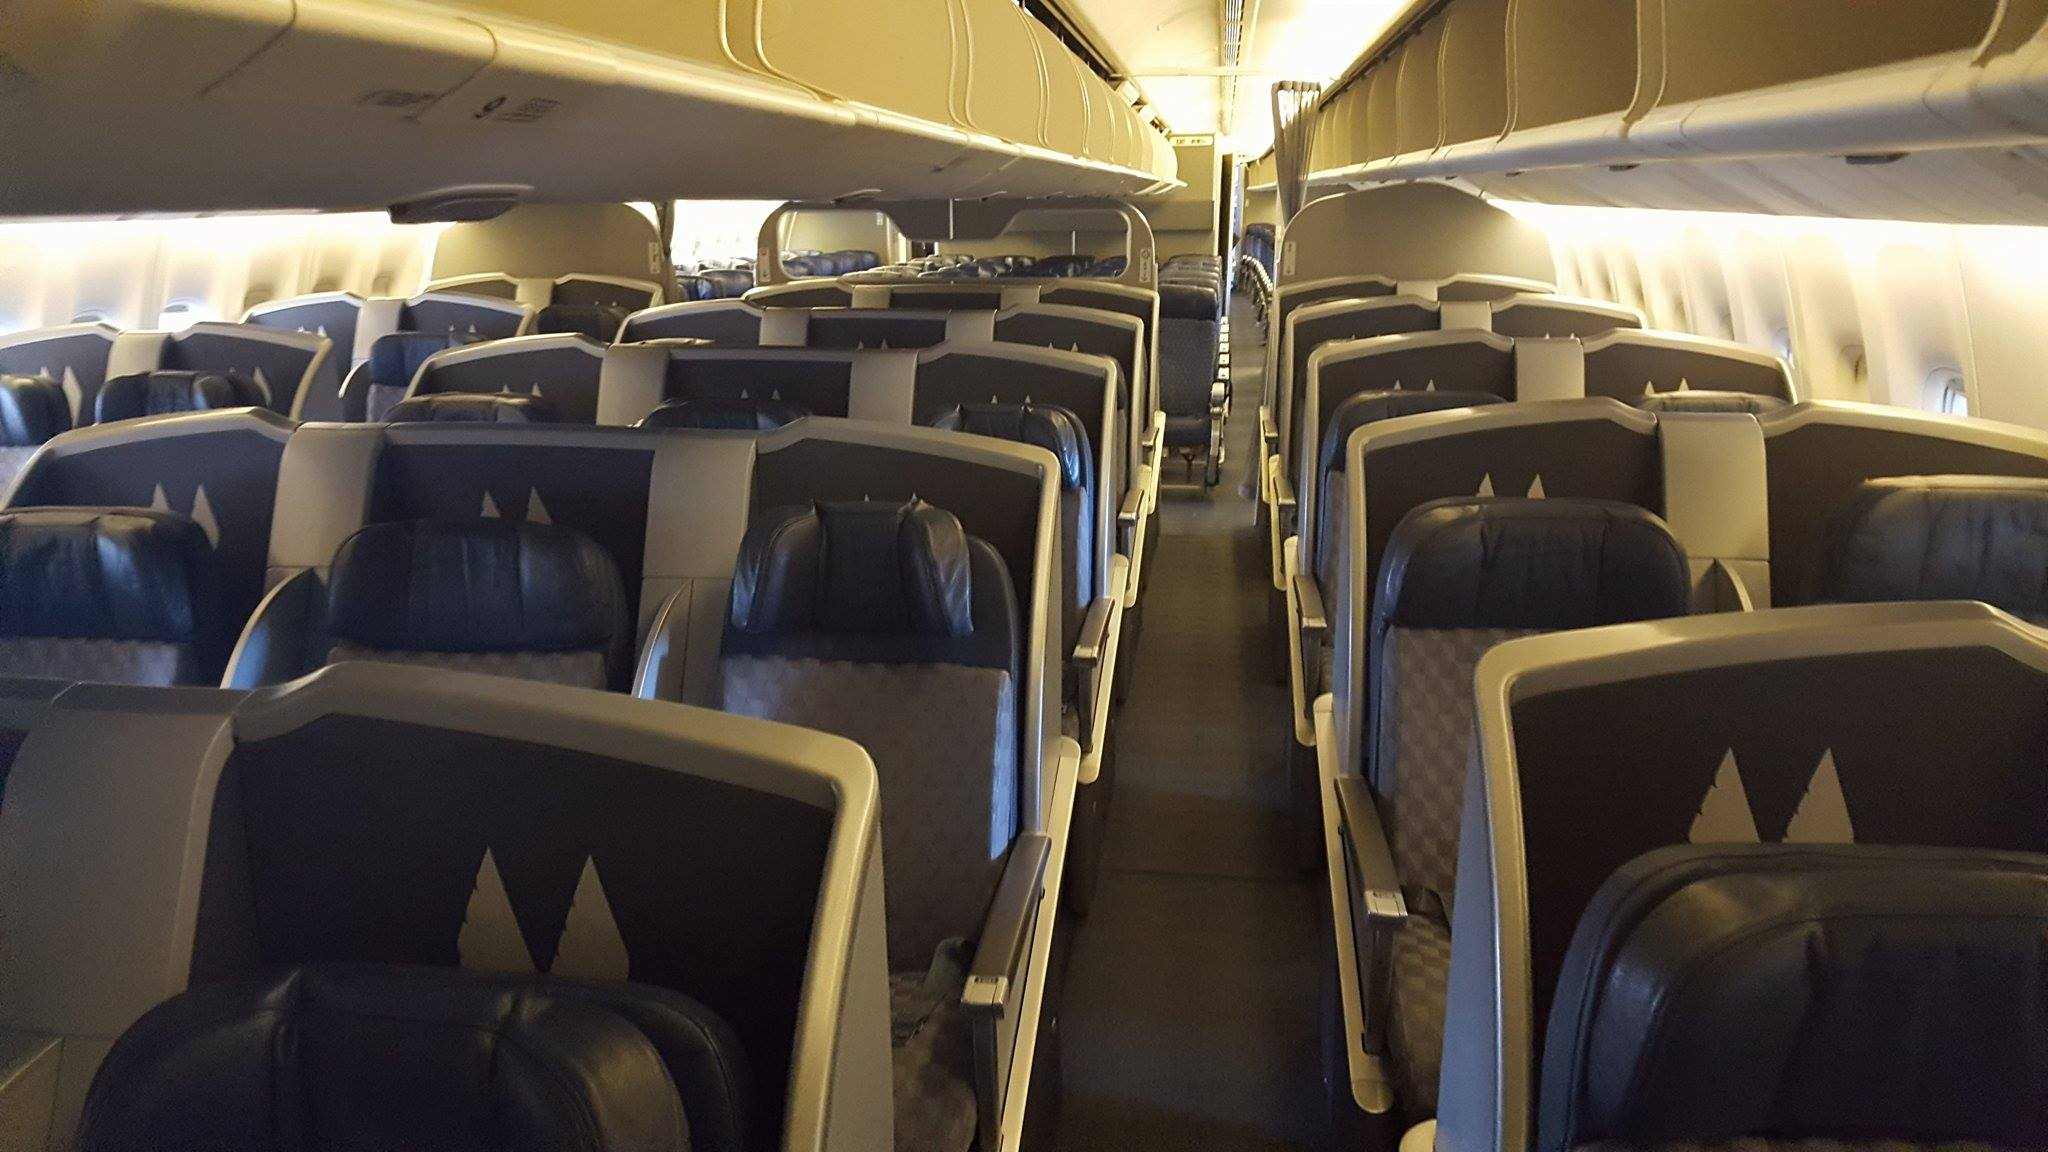 American Completes Two Class Retrofits For Entire Boeing